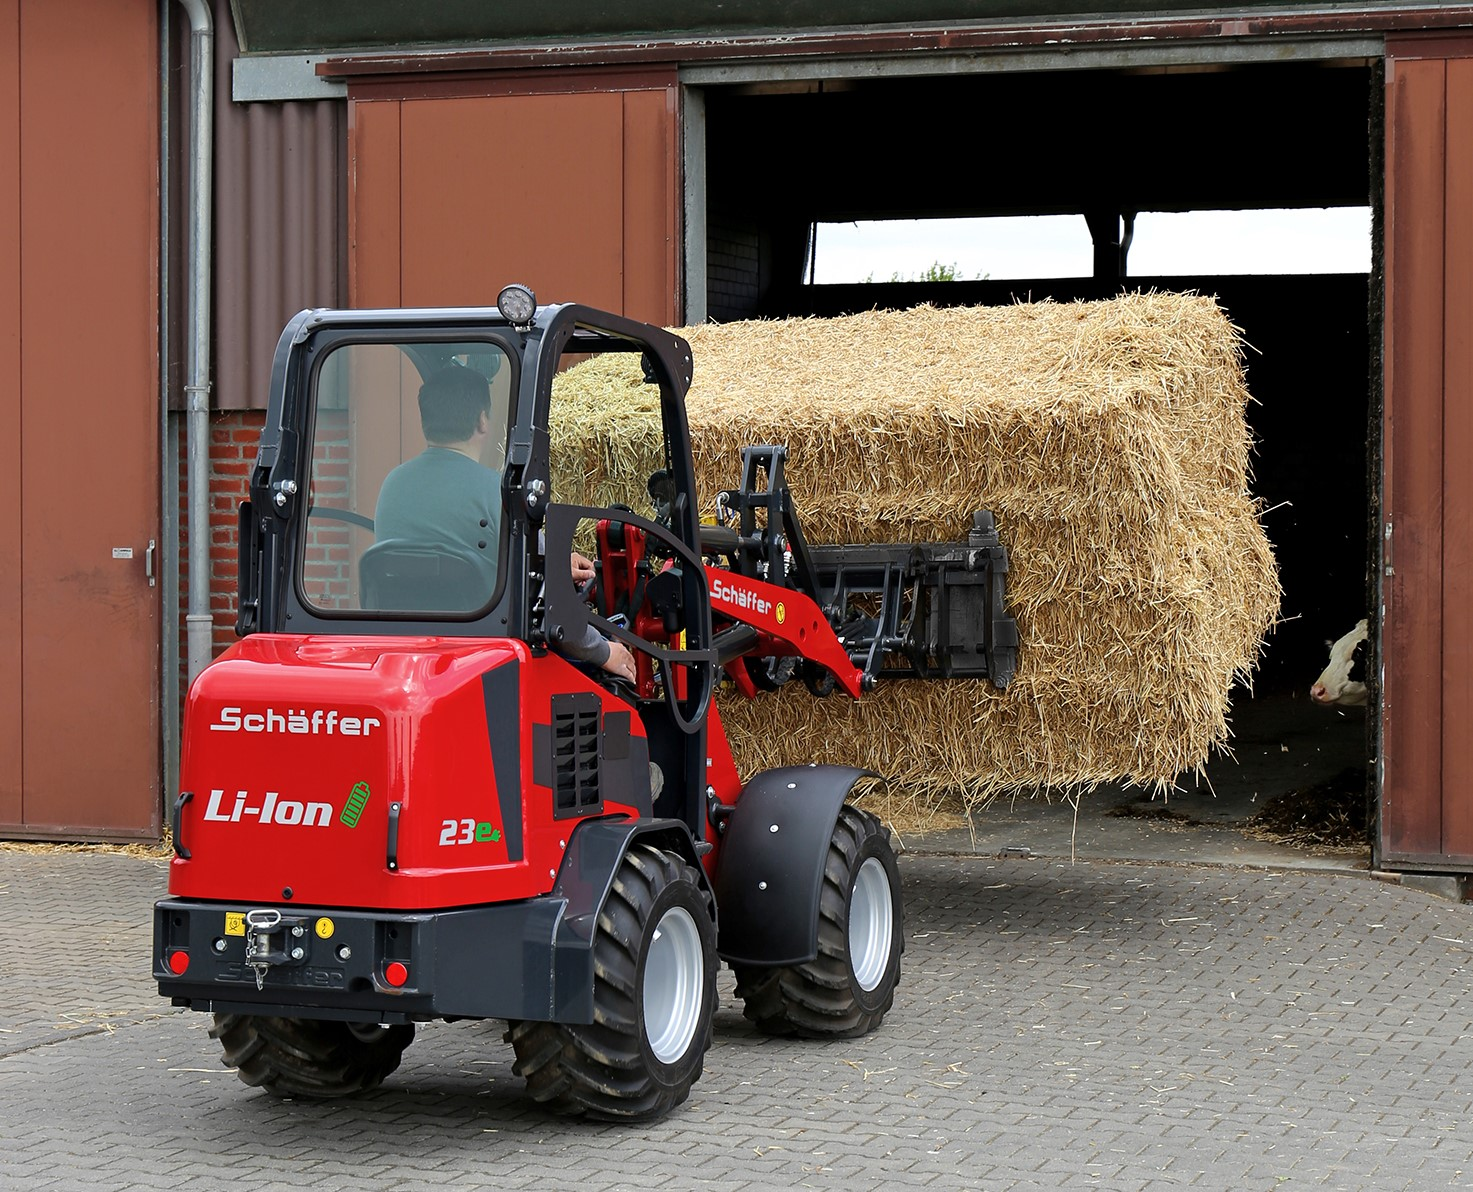 Schäffer Showcases Electric Loader And Other New Developments At LAMMA